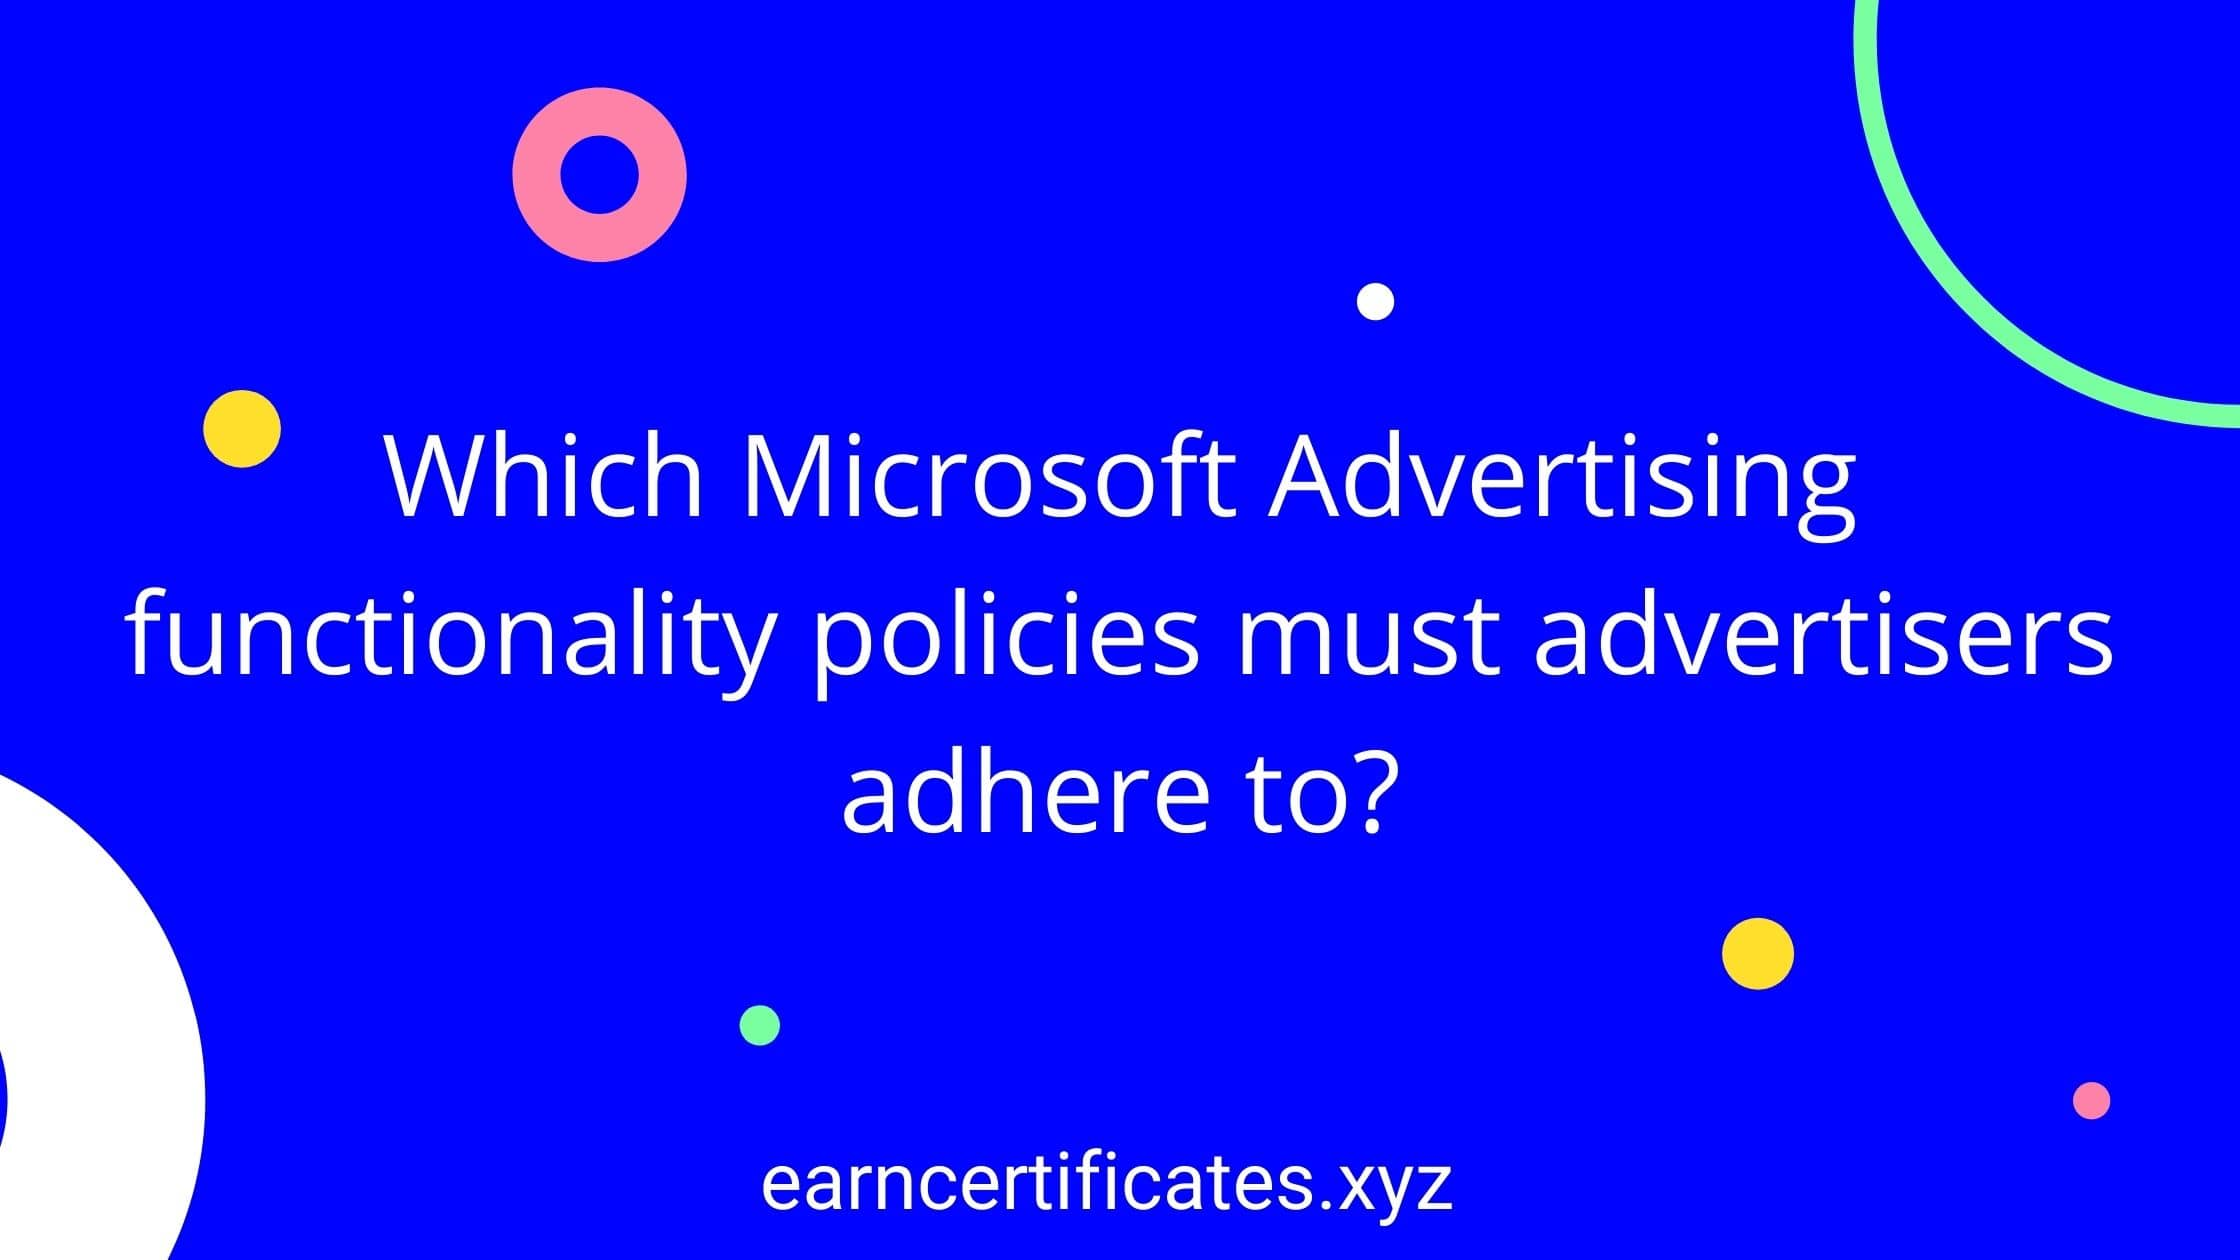 Which Microsoft Advertising functionality policies must advertisers adhere to?